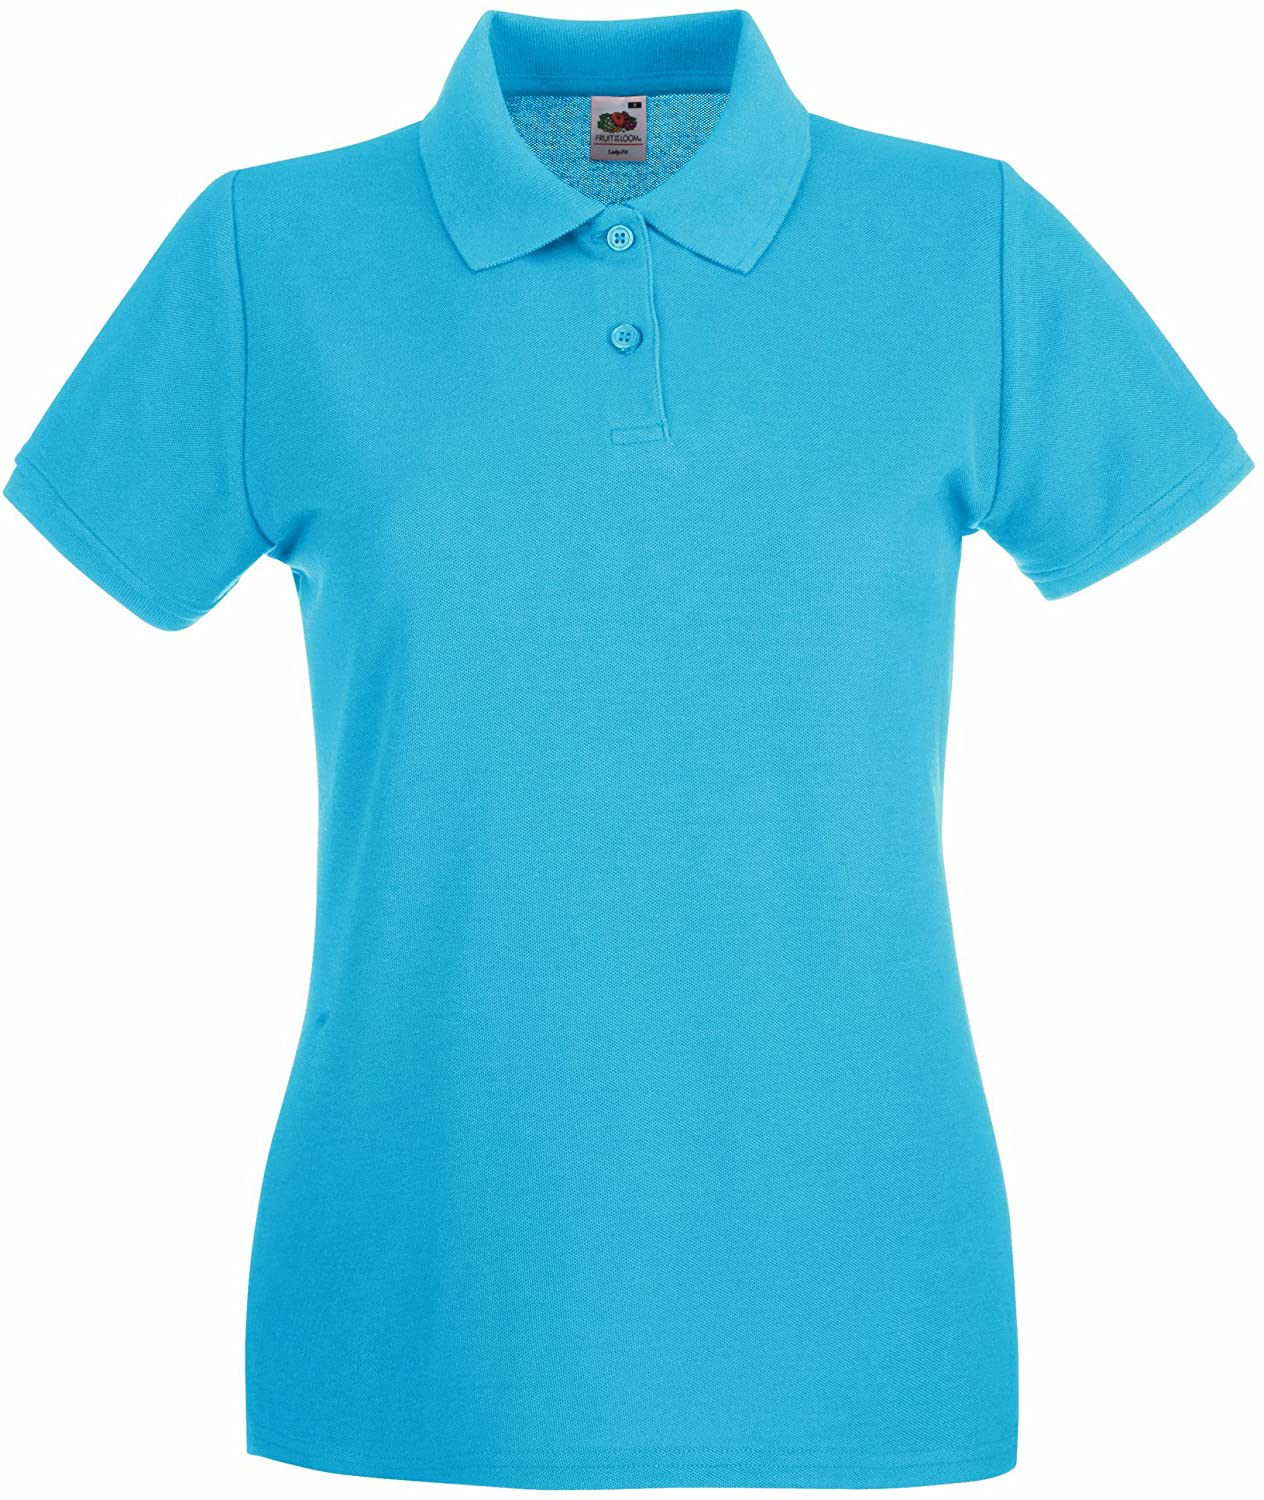 Fruit of the Loom Ladies Lady-Fit Premium Short Sleeve Polo Shirt (S) (Azure Blue)